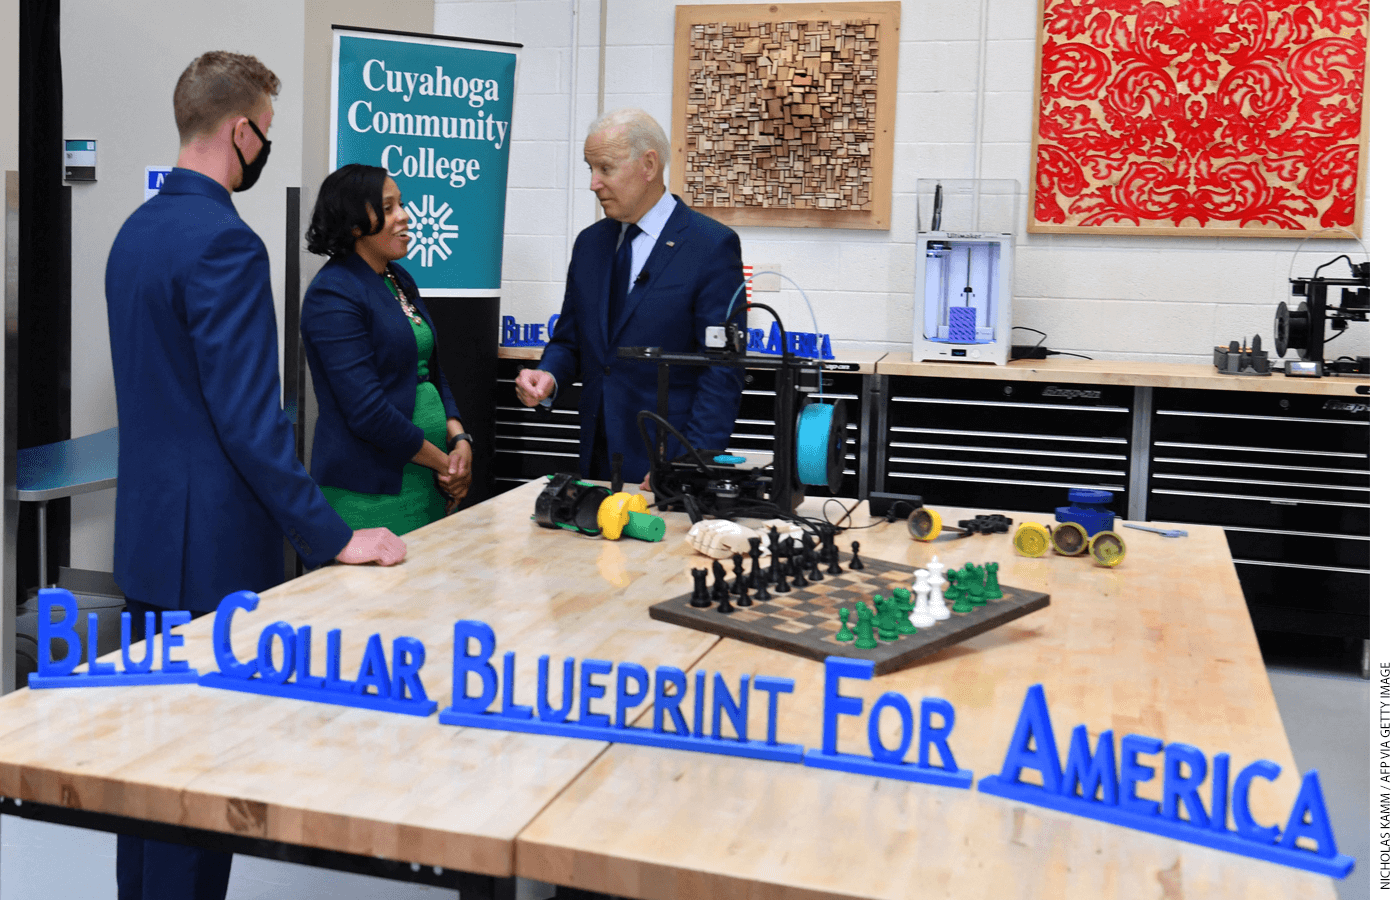 In May 2021, President Biden discussed the economy at an Ohio community college.